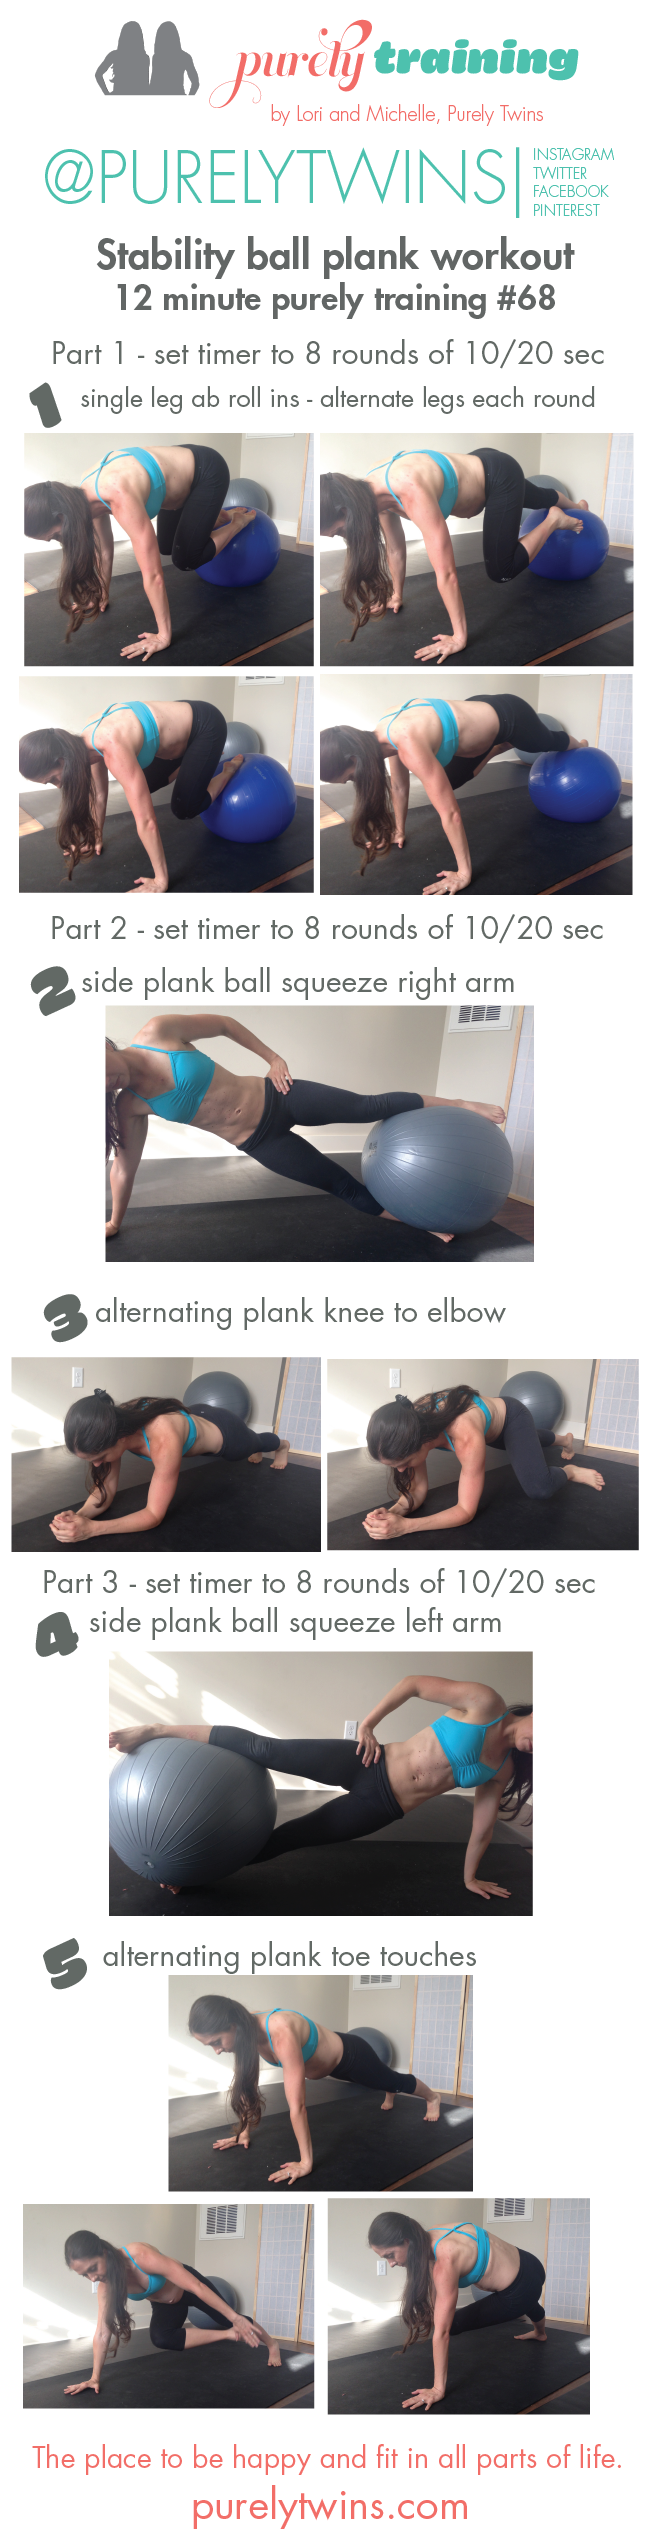 stability ball plank workout PT 68 for a lean mid section